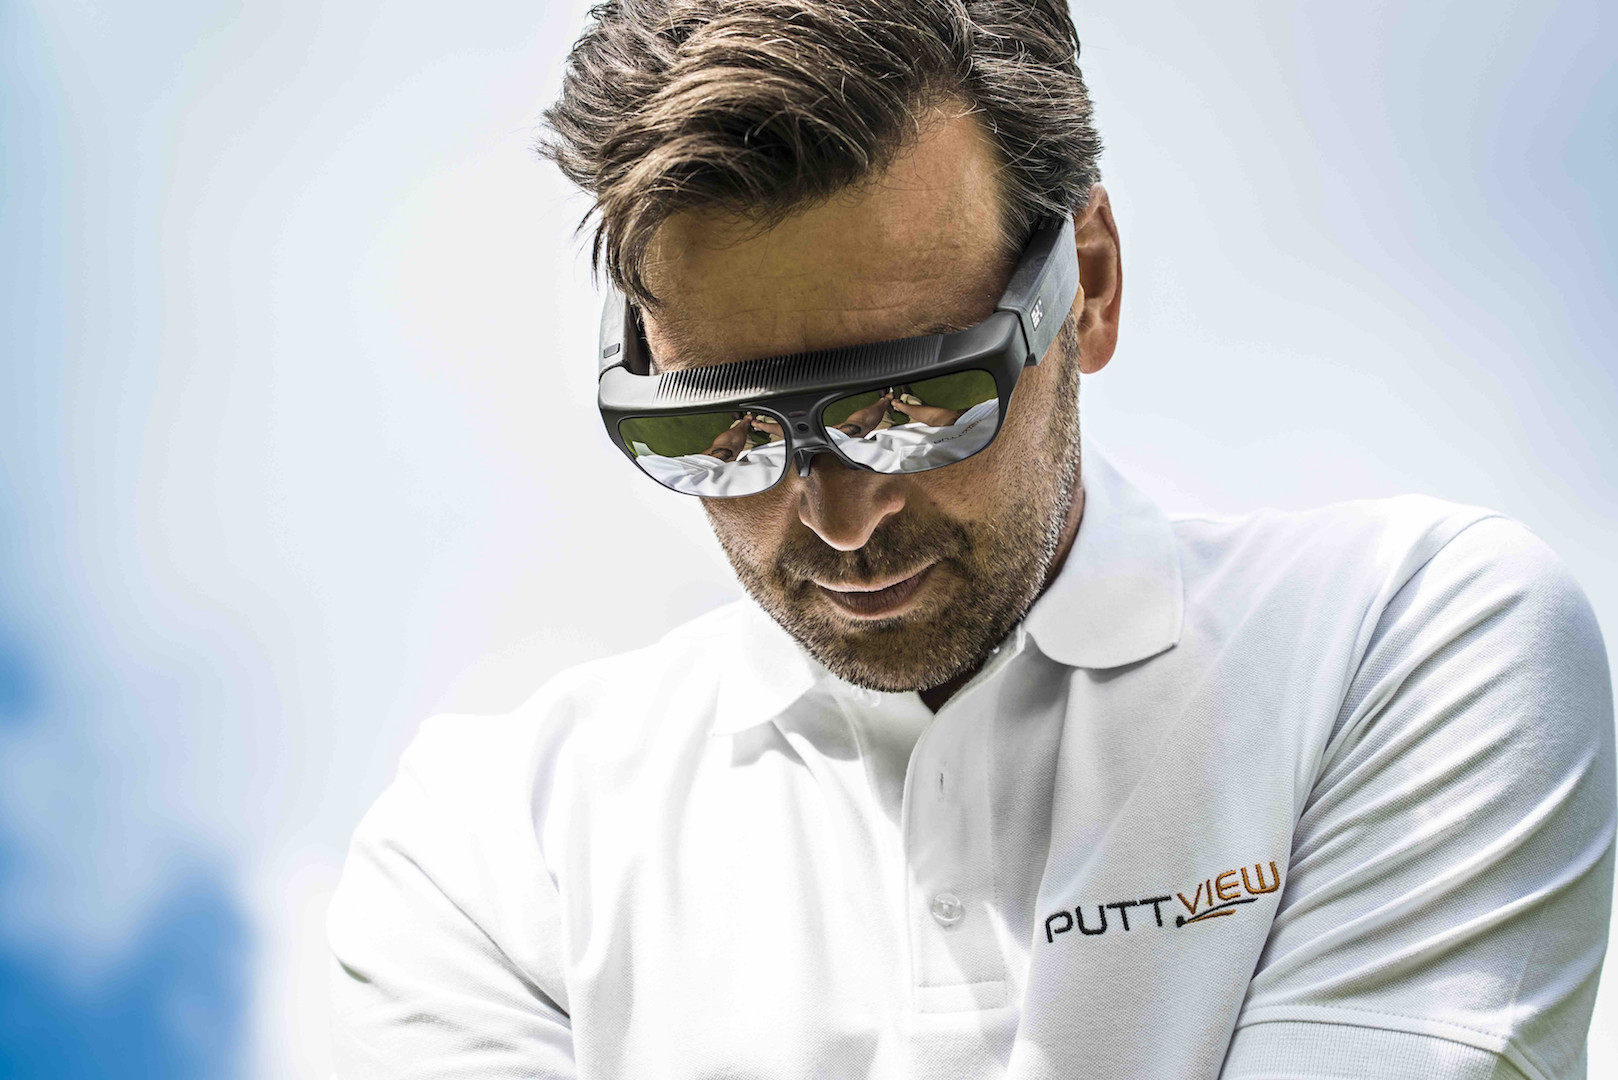 Puttview brings augmented reality to golf